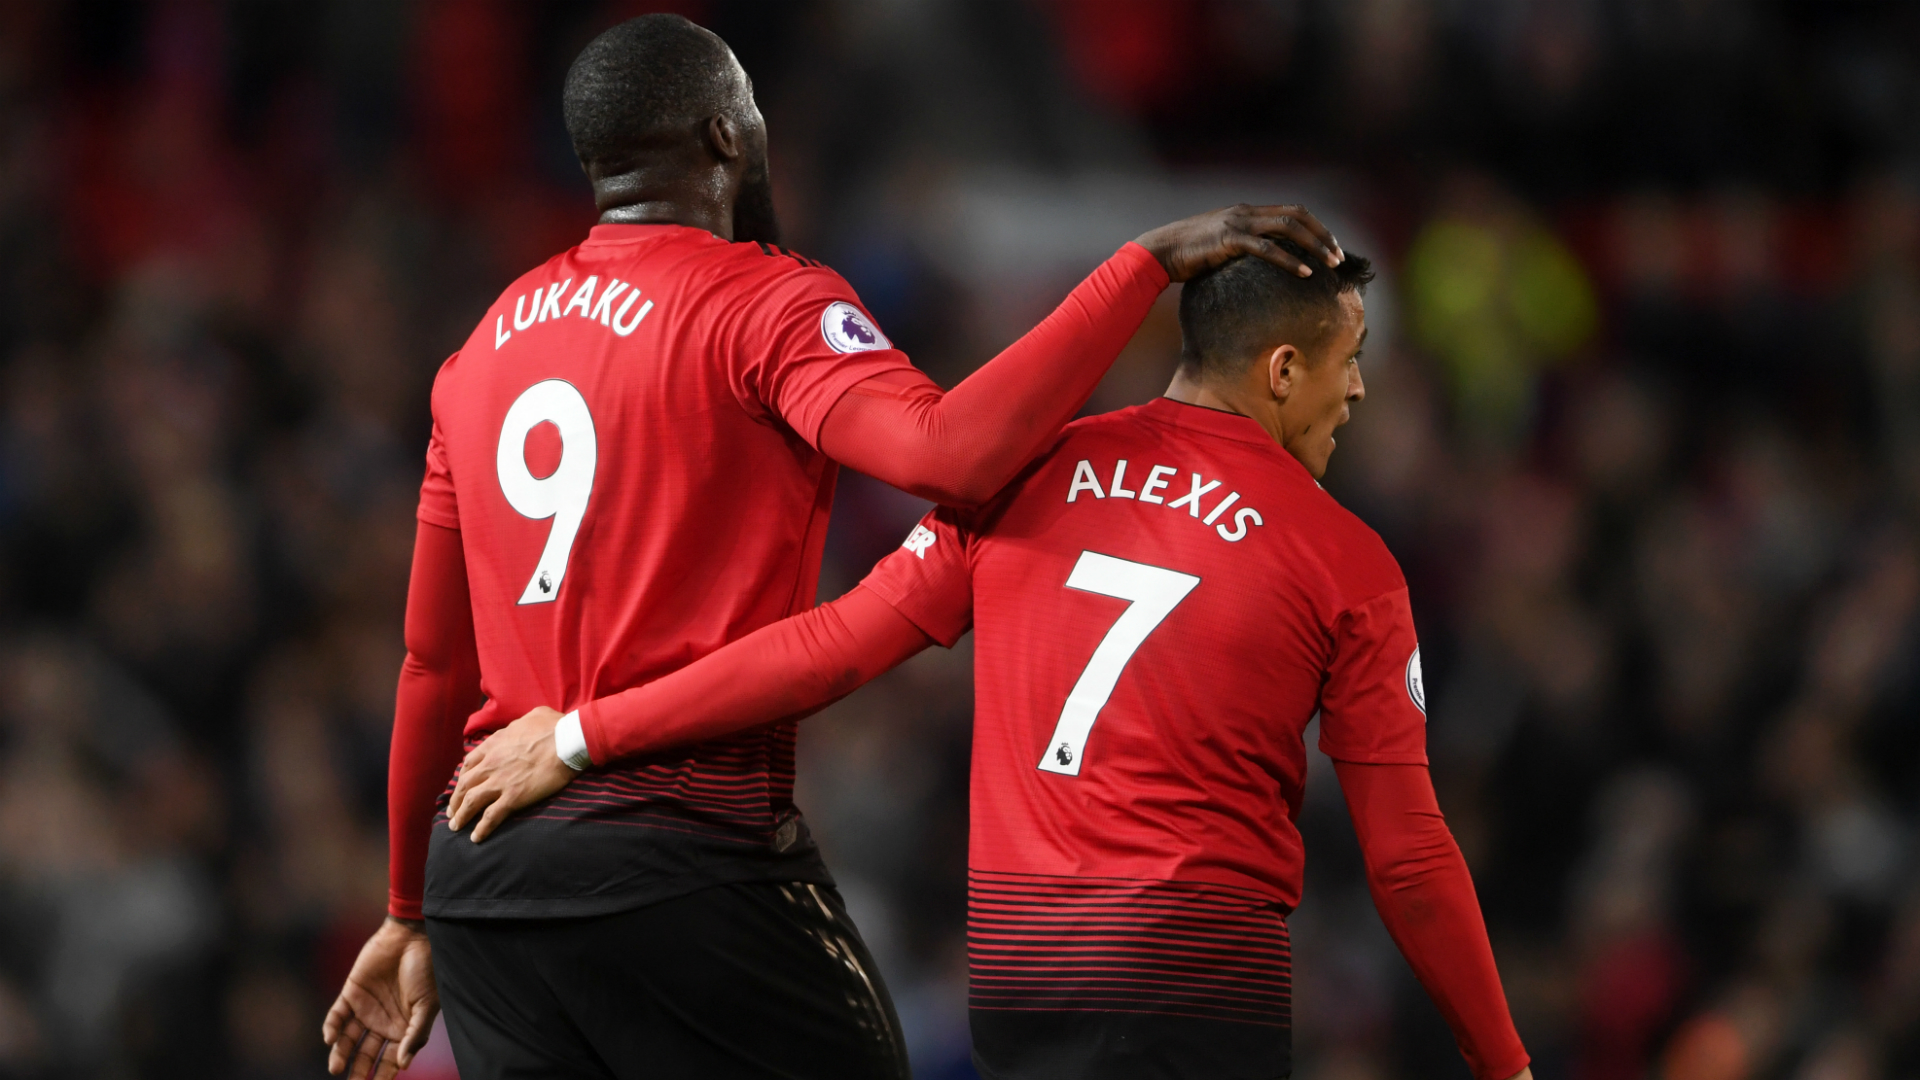 A dramatic comeback doesn't fix Manchester United's fatal flaw